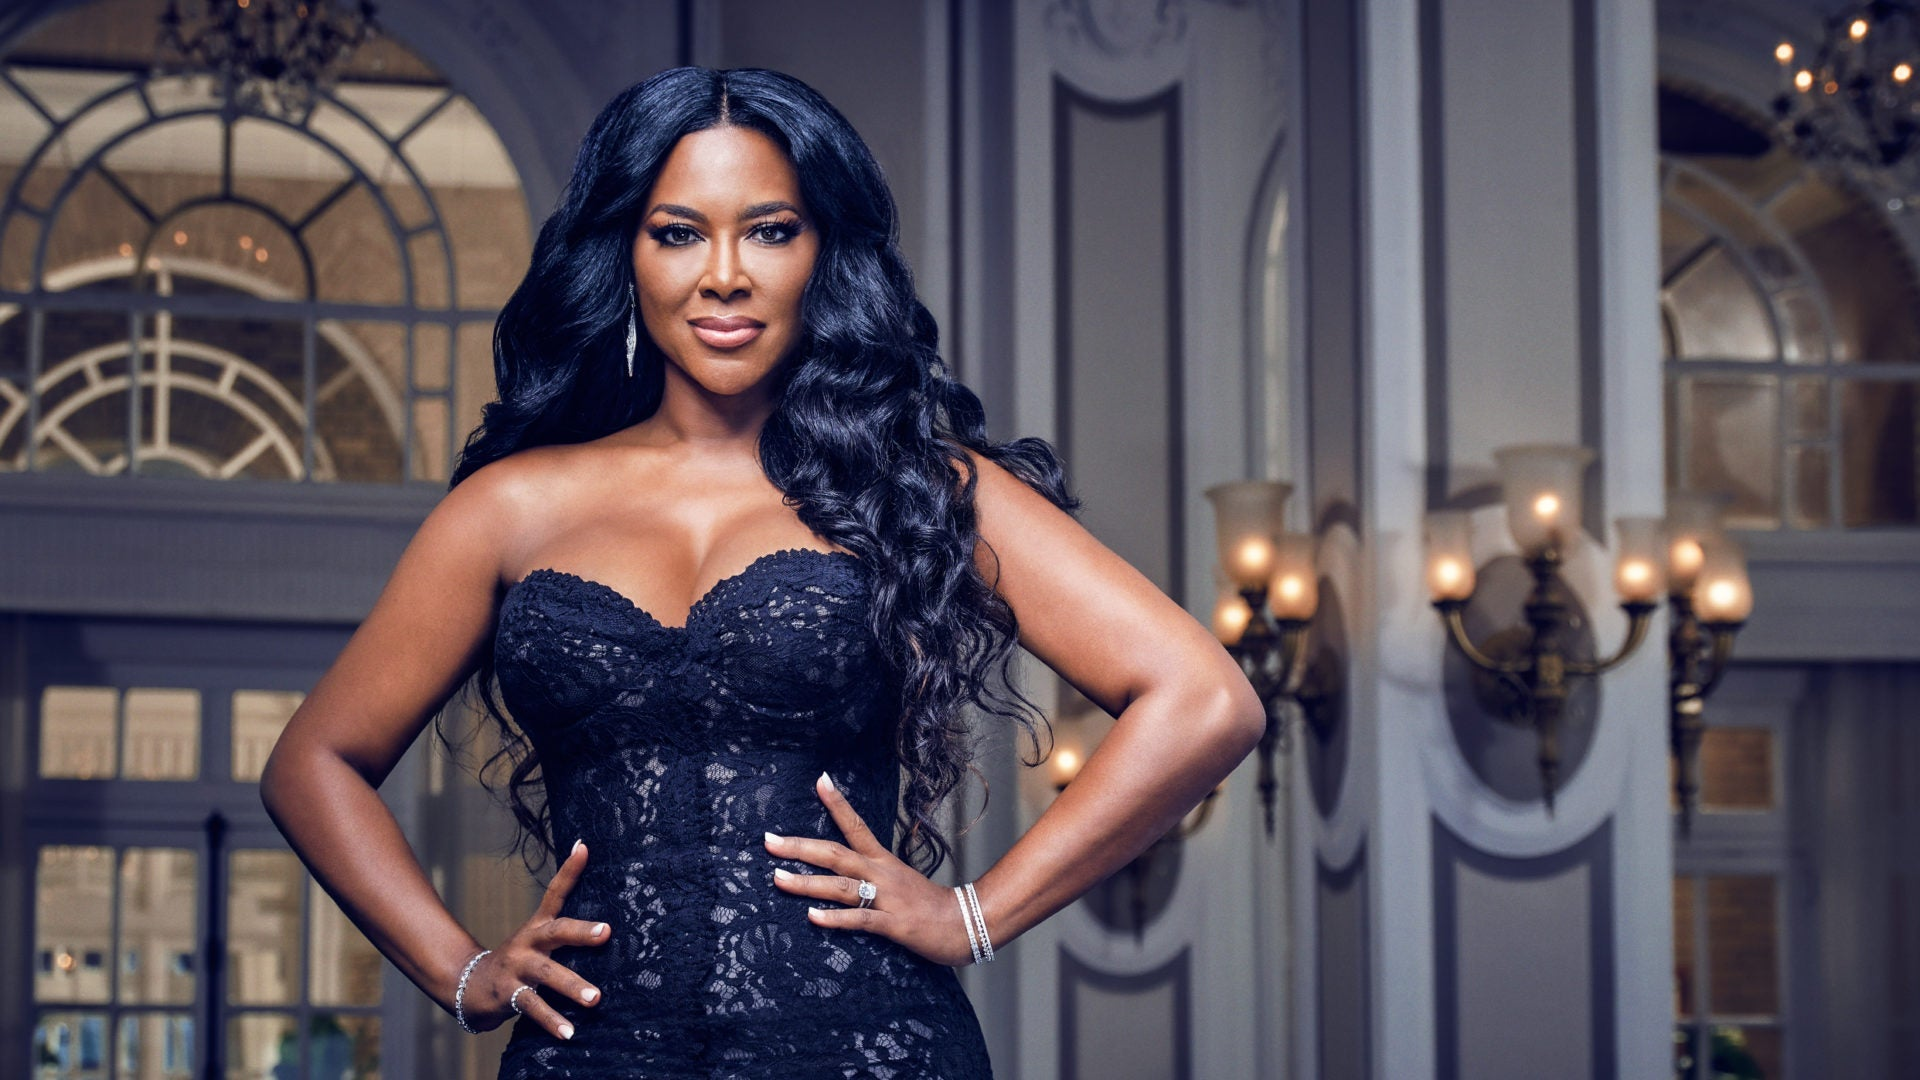 Kenya Moore Is Fighting For Your Edges